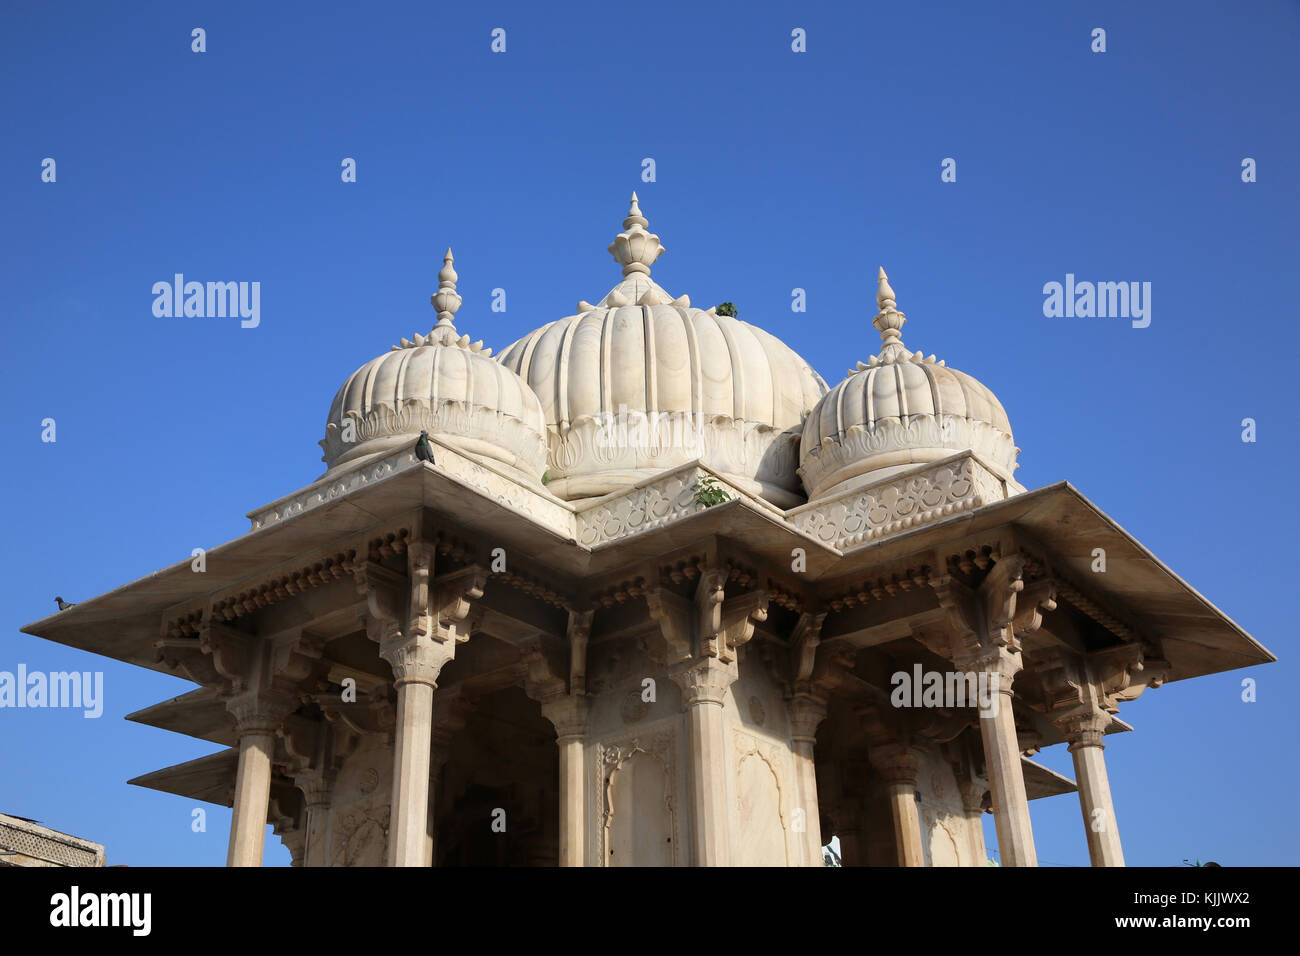 Ajmer cenotaph. India. - Stock Image